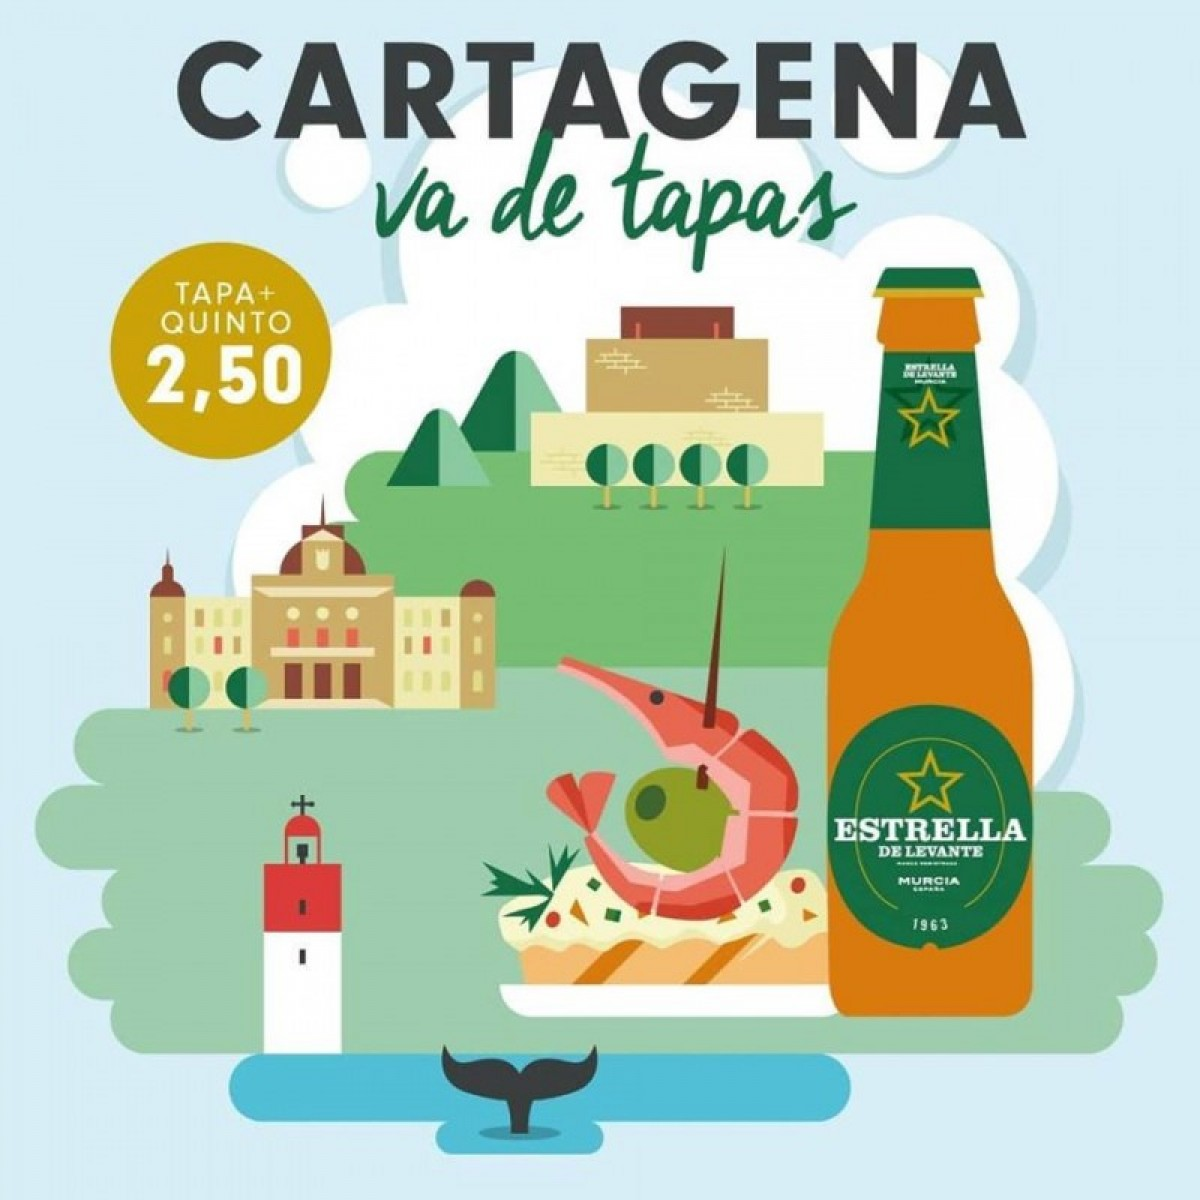 19th October to 4th November Cartagena va de Tapas